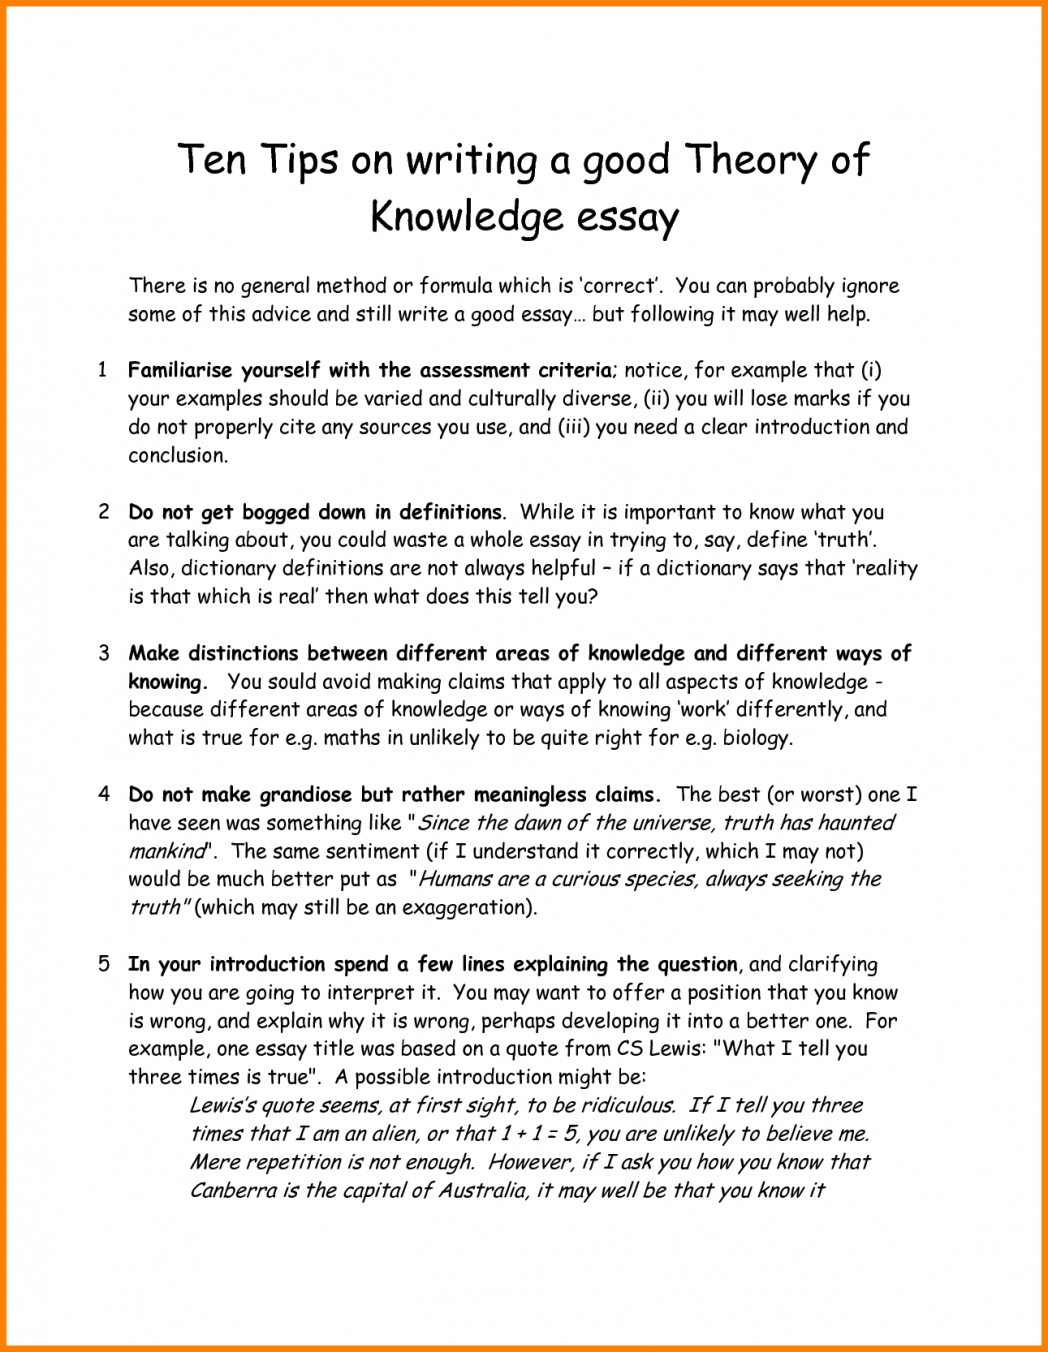 019 Good Ways To Startssaynglish The Paragraph How An Observationxamples Off About Yourself Ledger Pa Informative Writing Analysis Conclusion Academic Applicationxpository 1048x1352 Unusual Start Essay A History Sentence For Write Expository Full